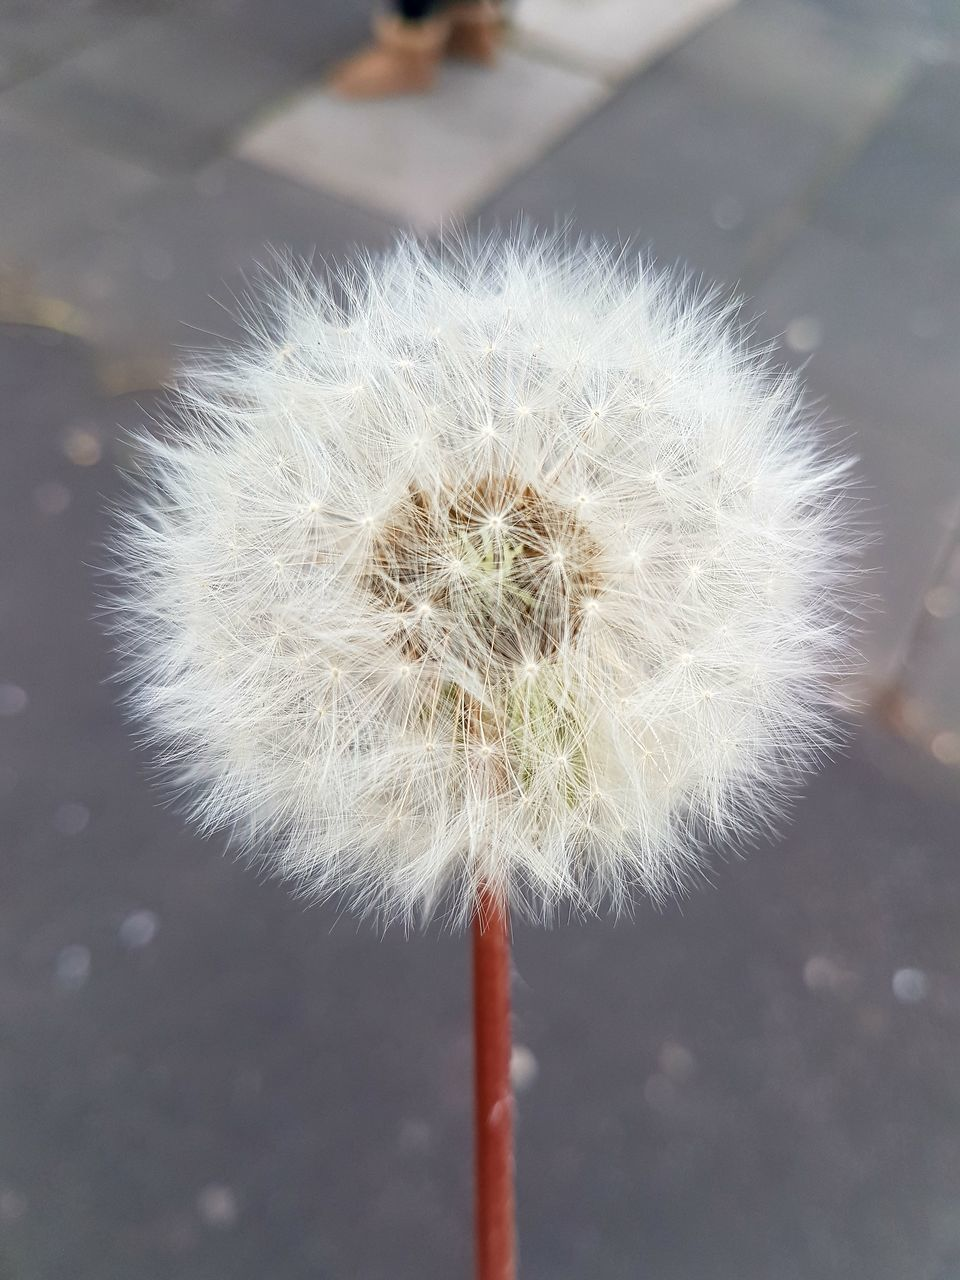 dandelion, flower, fragility, close-up, white color, focus on foreground, softness, growth, freshness, nature, day, plant, flower head, beauty in nature, outdoors, no people